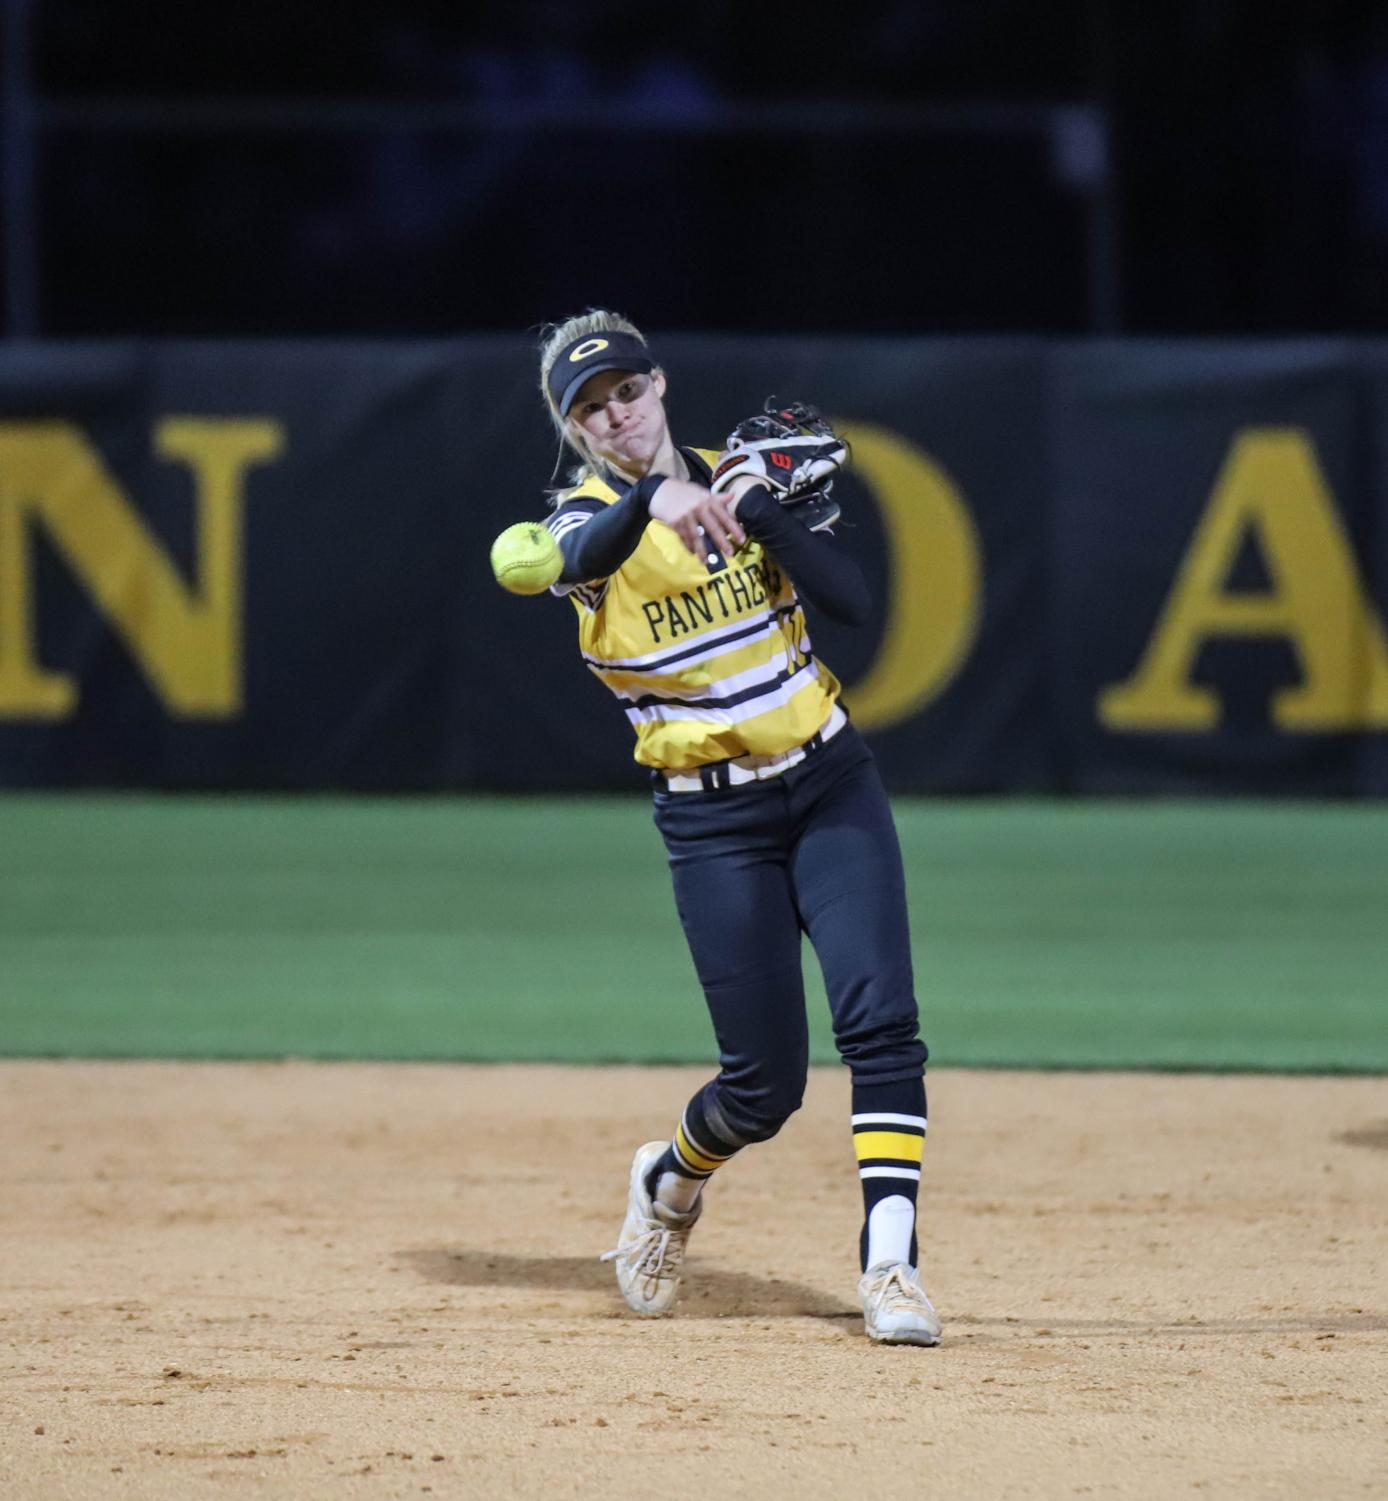 Shortstop Paige Hulsey makes a throw to first base to beat the runner. Hulsey will be attending the University of Houston to play softball.